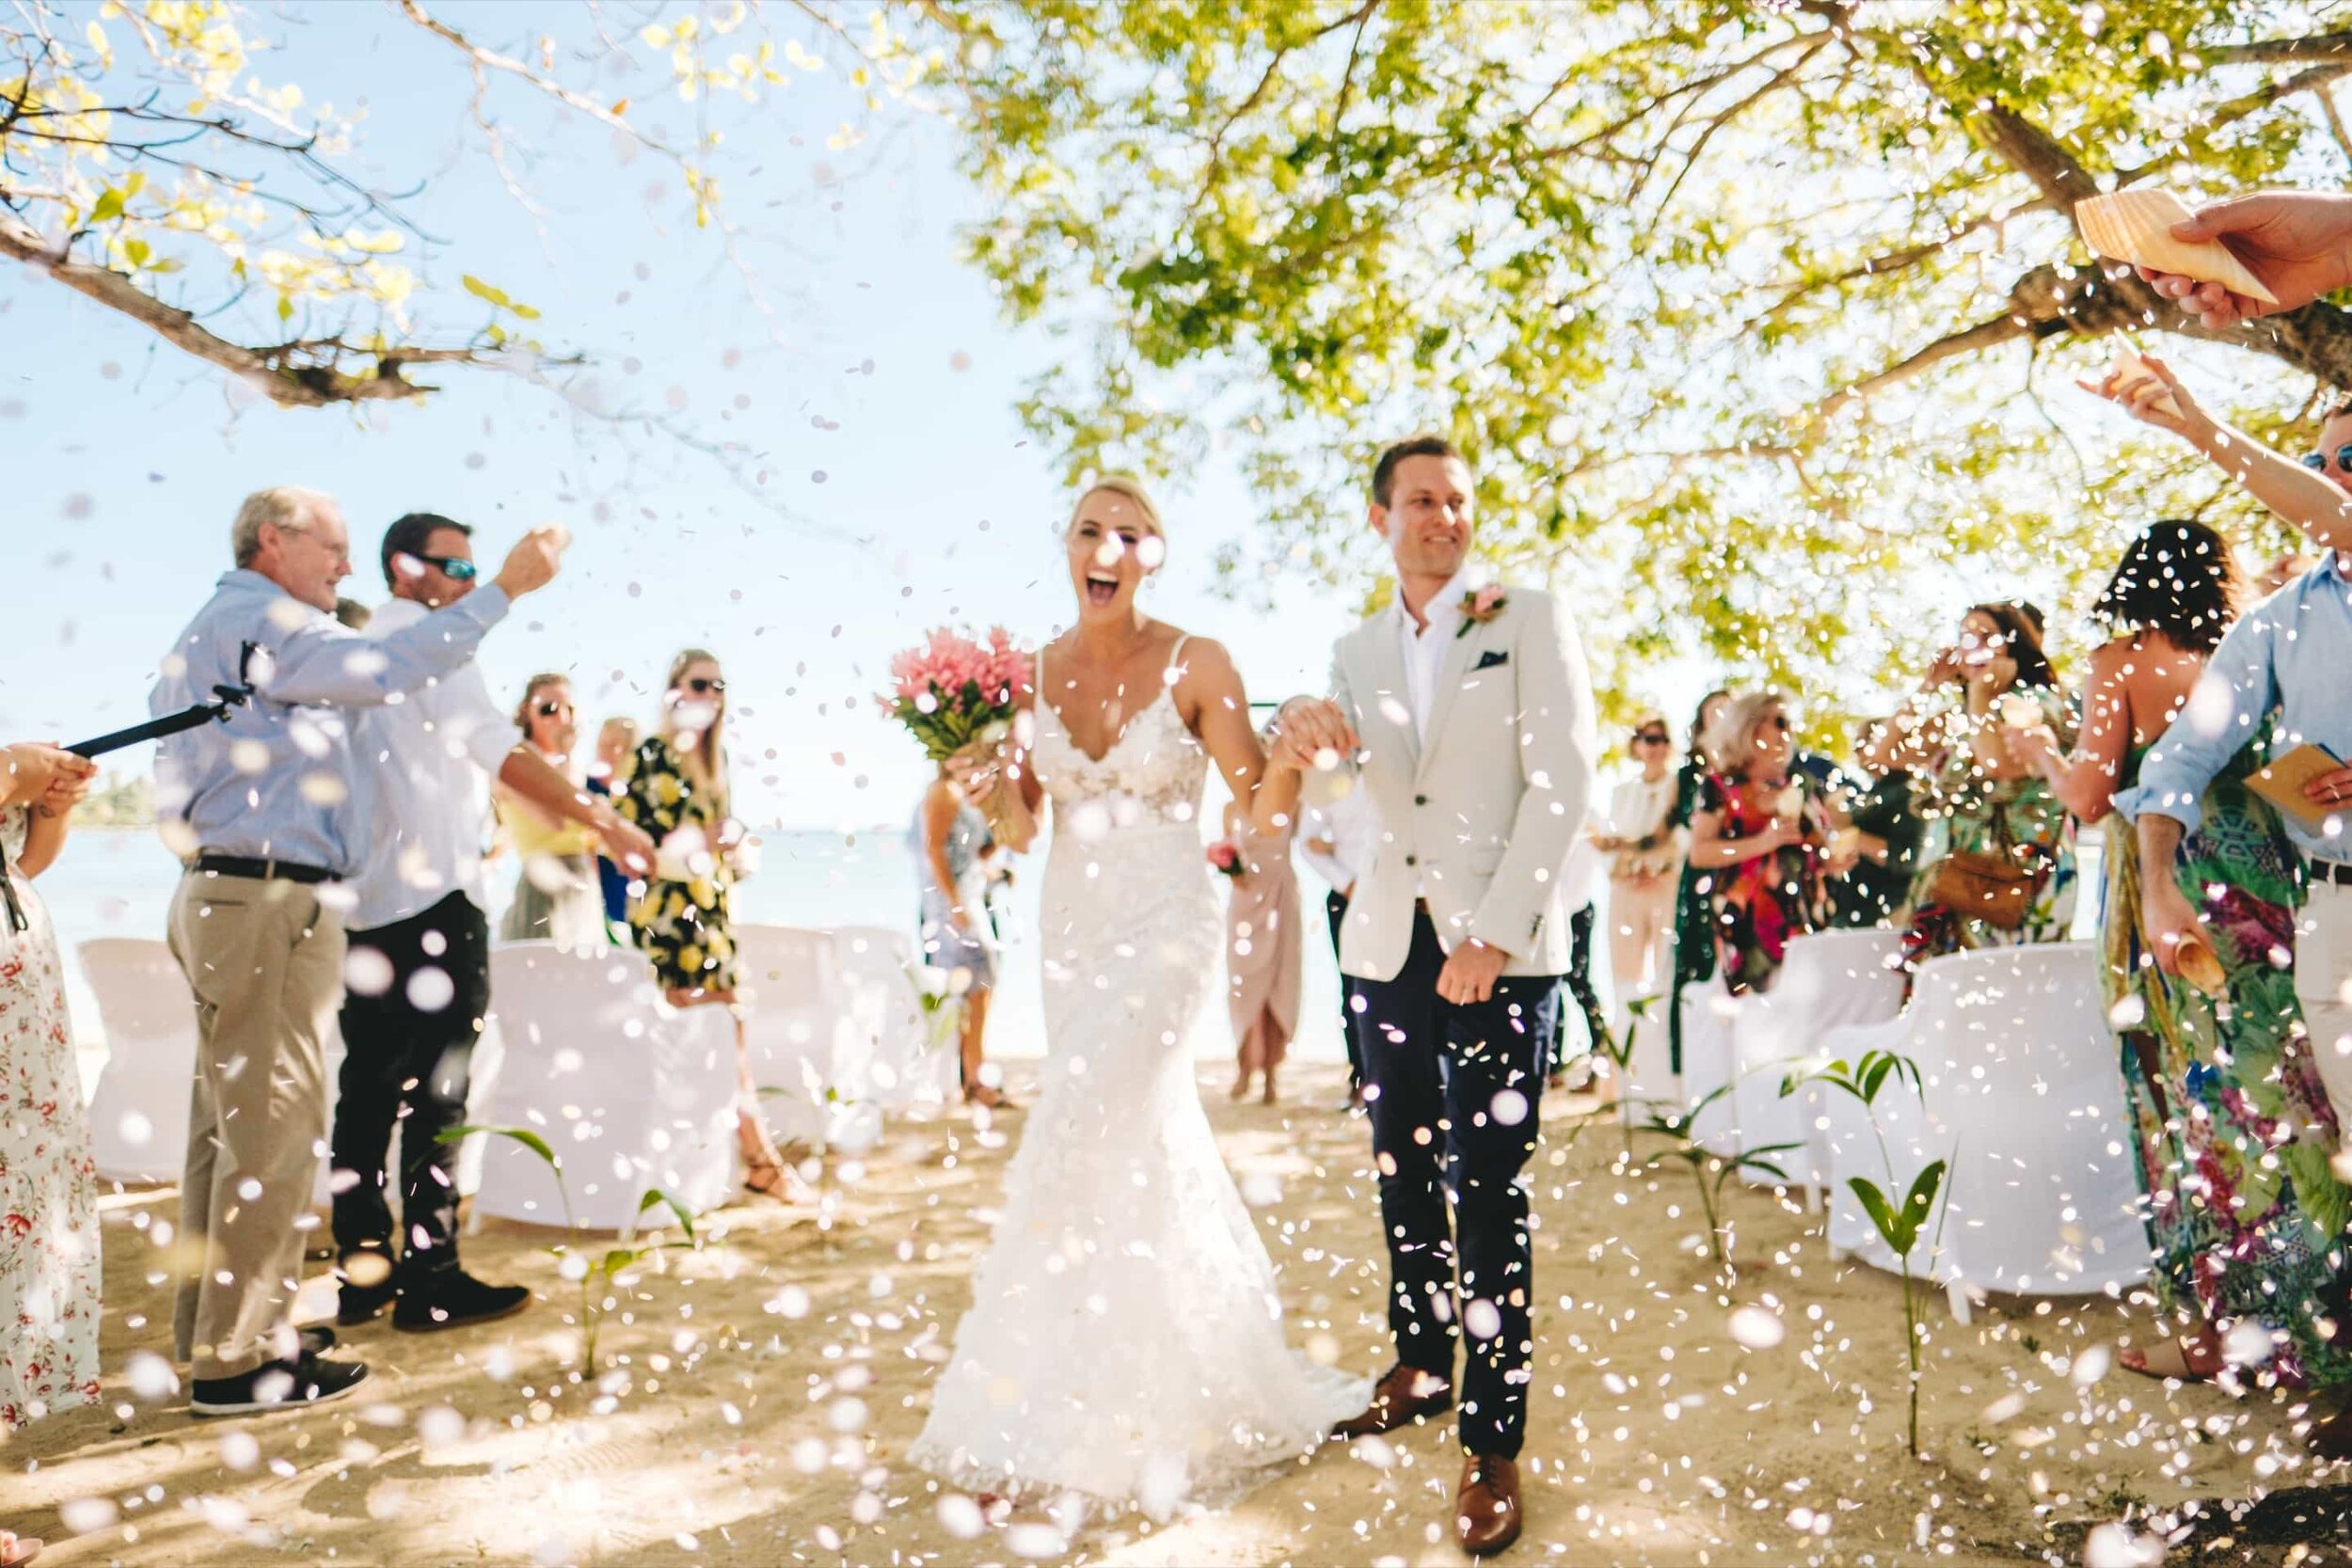 Out of focus photo of young married couple with an explosion of confetti surrounding them as they leave their wedding ceremony venoue on the beach at Musket Cove Resort Fiji